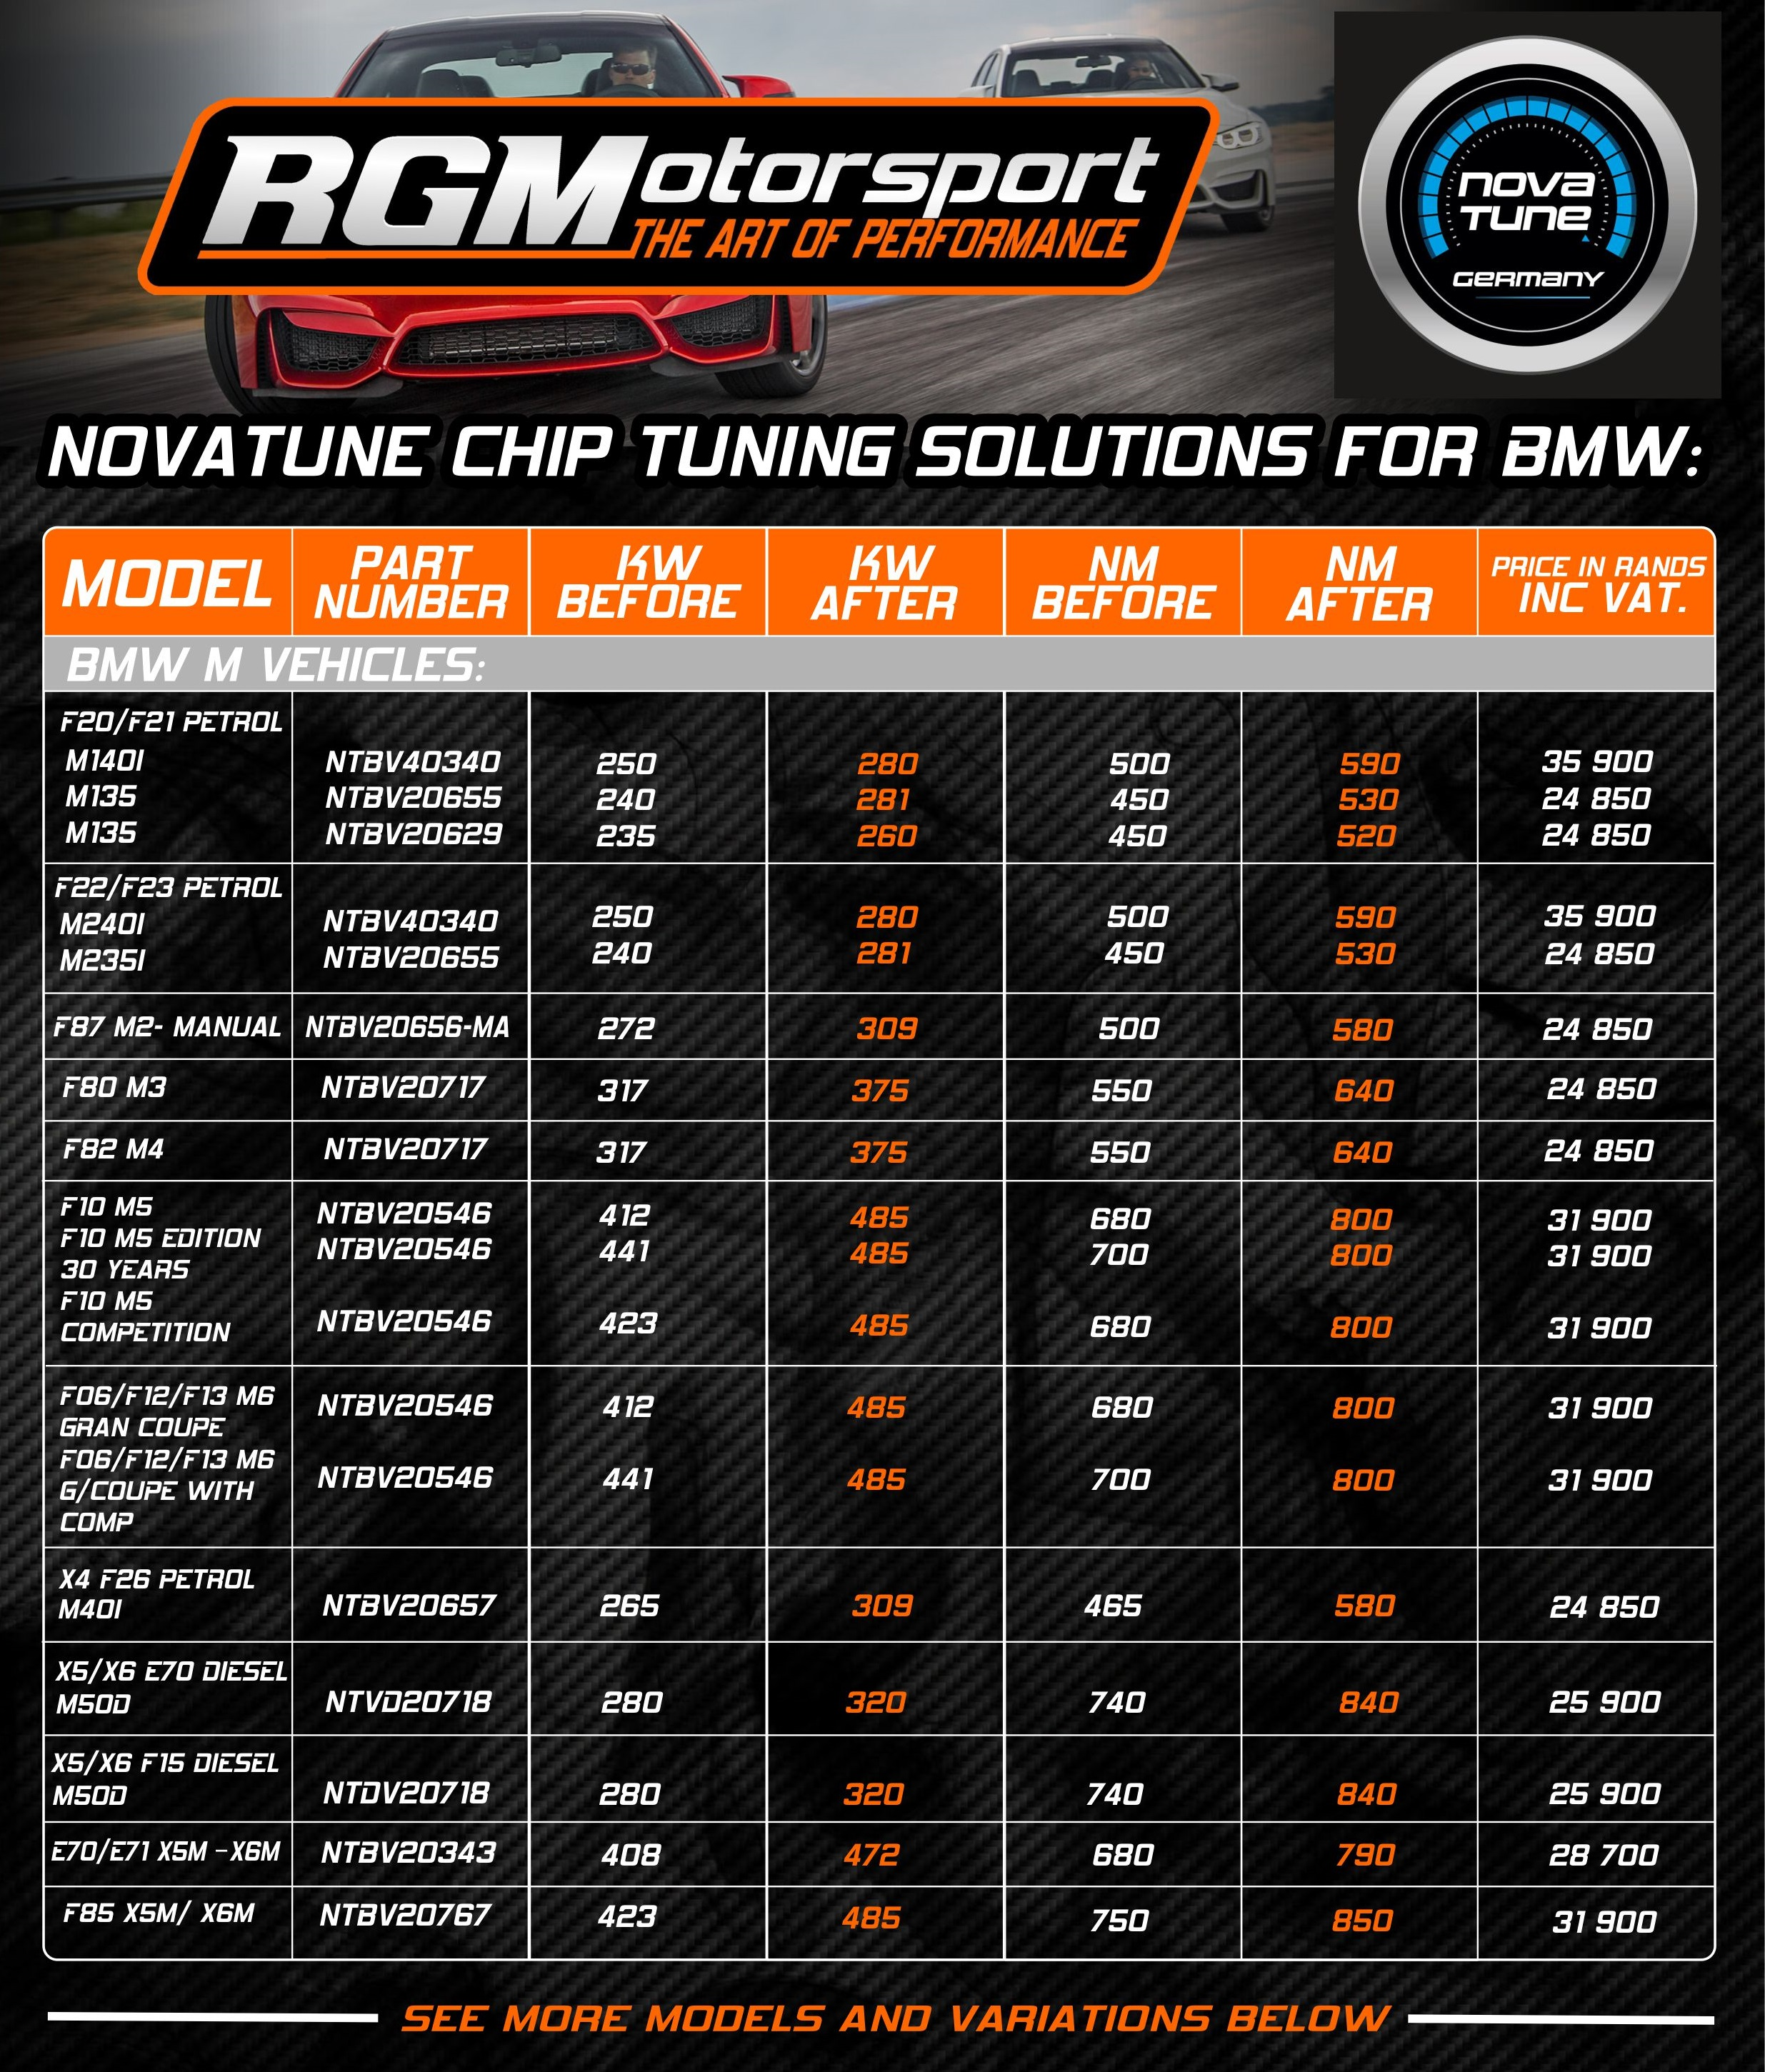 NOVATUNE CHIP BMW M CARS MARCH 2017